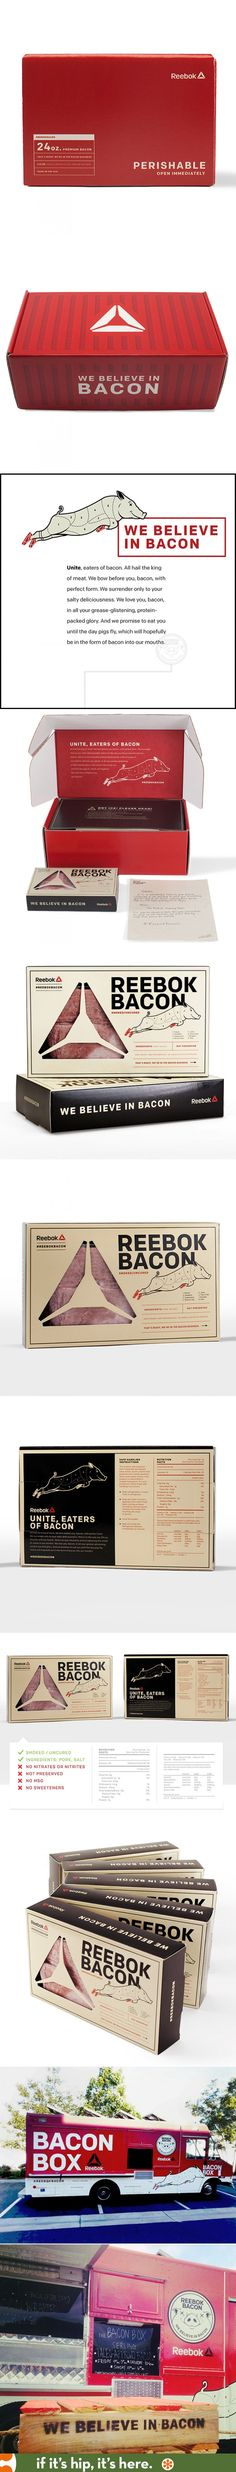 Reebok Bacon package design, food truck design and branding